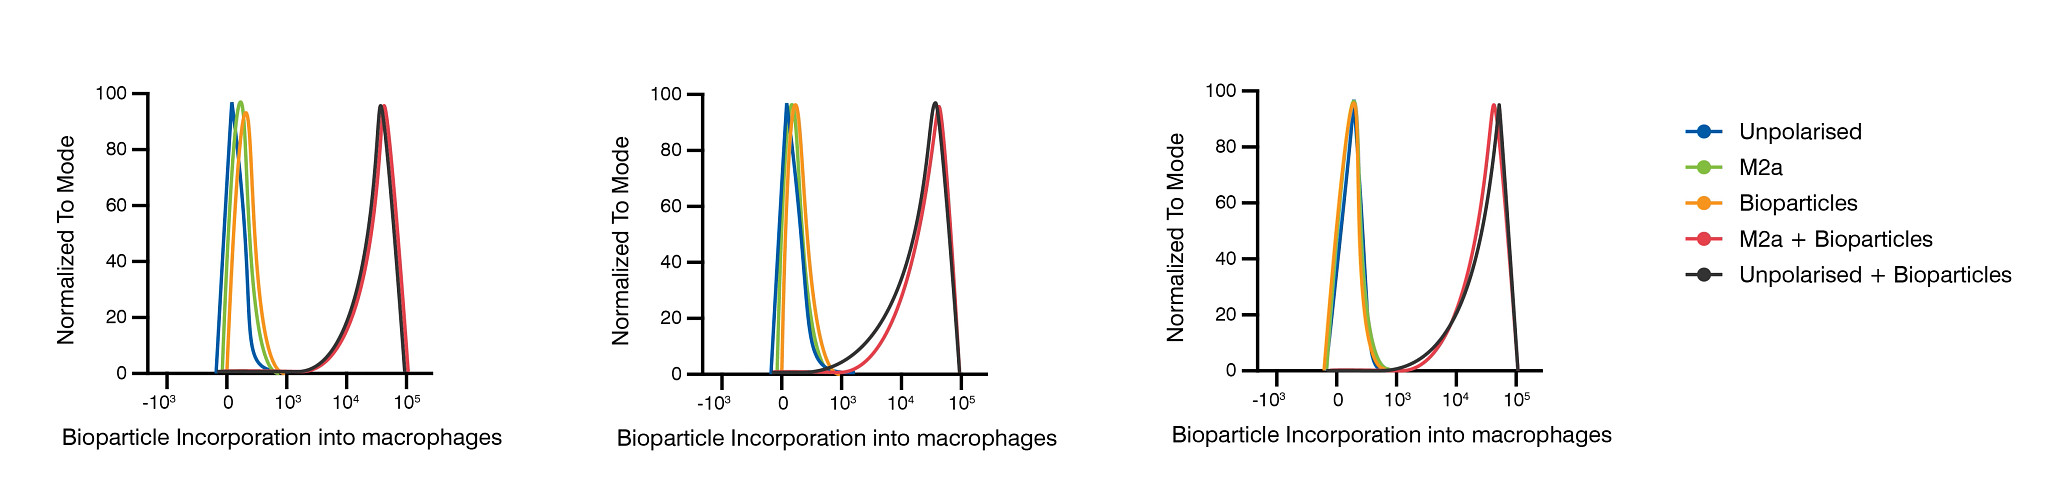 Results of flow cytometry characterizing bioparticles macrophage